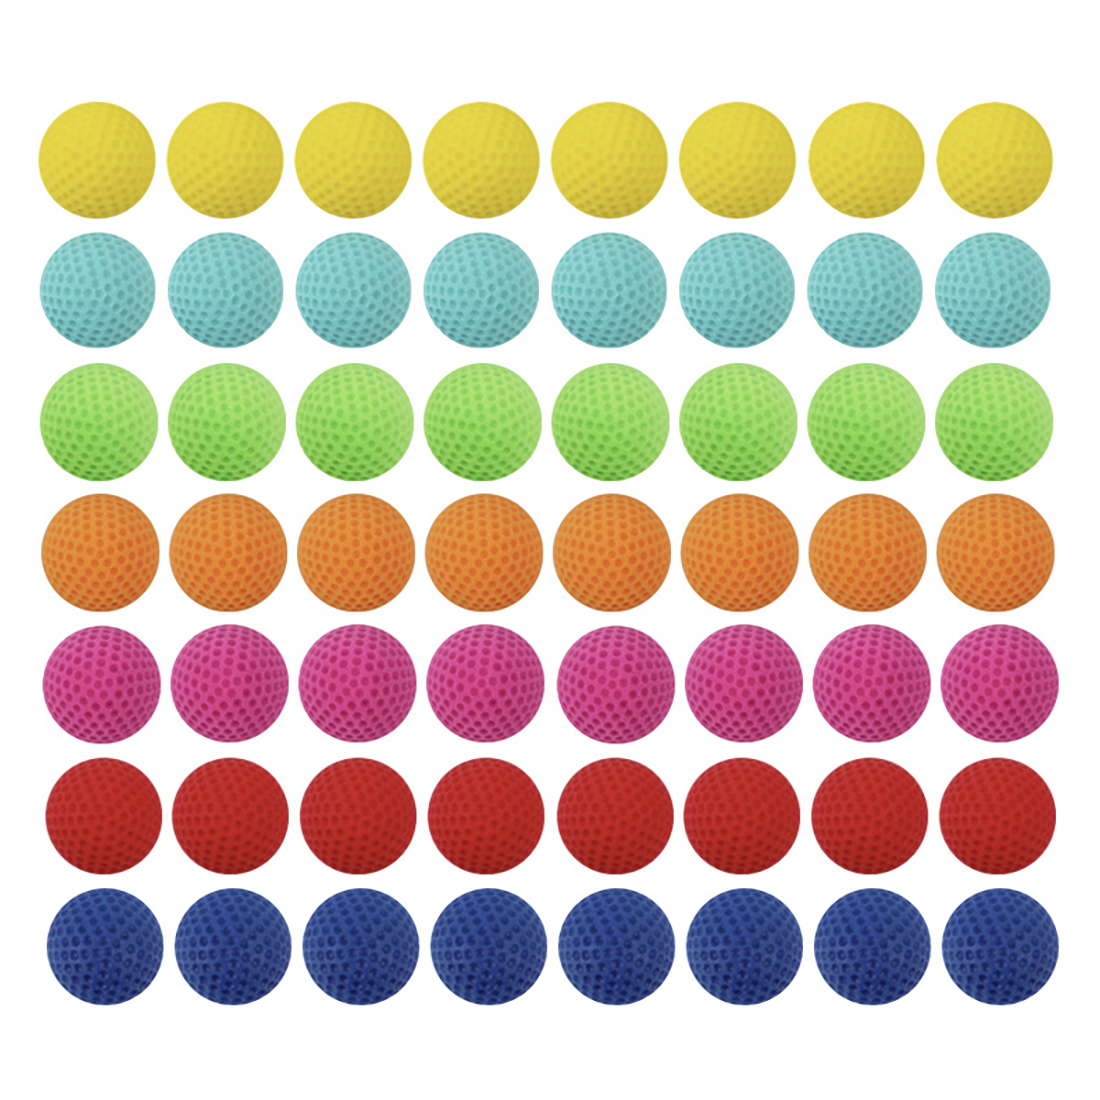 100pcs Round Refill Foam Seven Color Mixed Bullet Balls Compatible For XVIII-6000/MXVI-4000/MXVII-10K Apollo Toy For Boys Gift